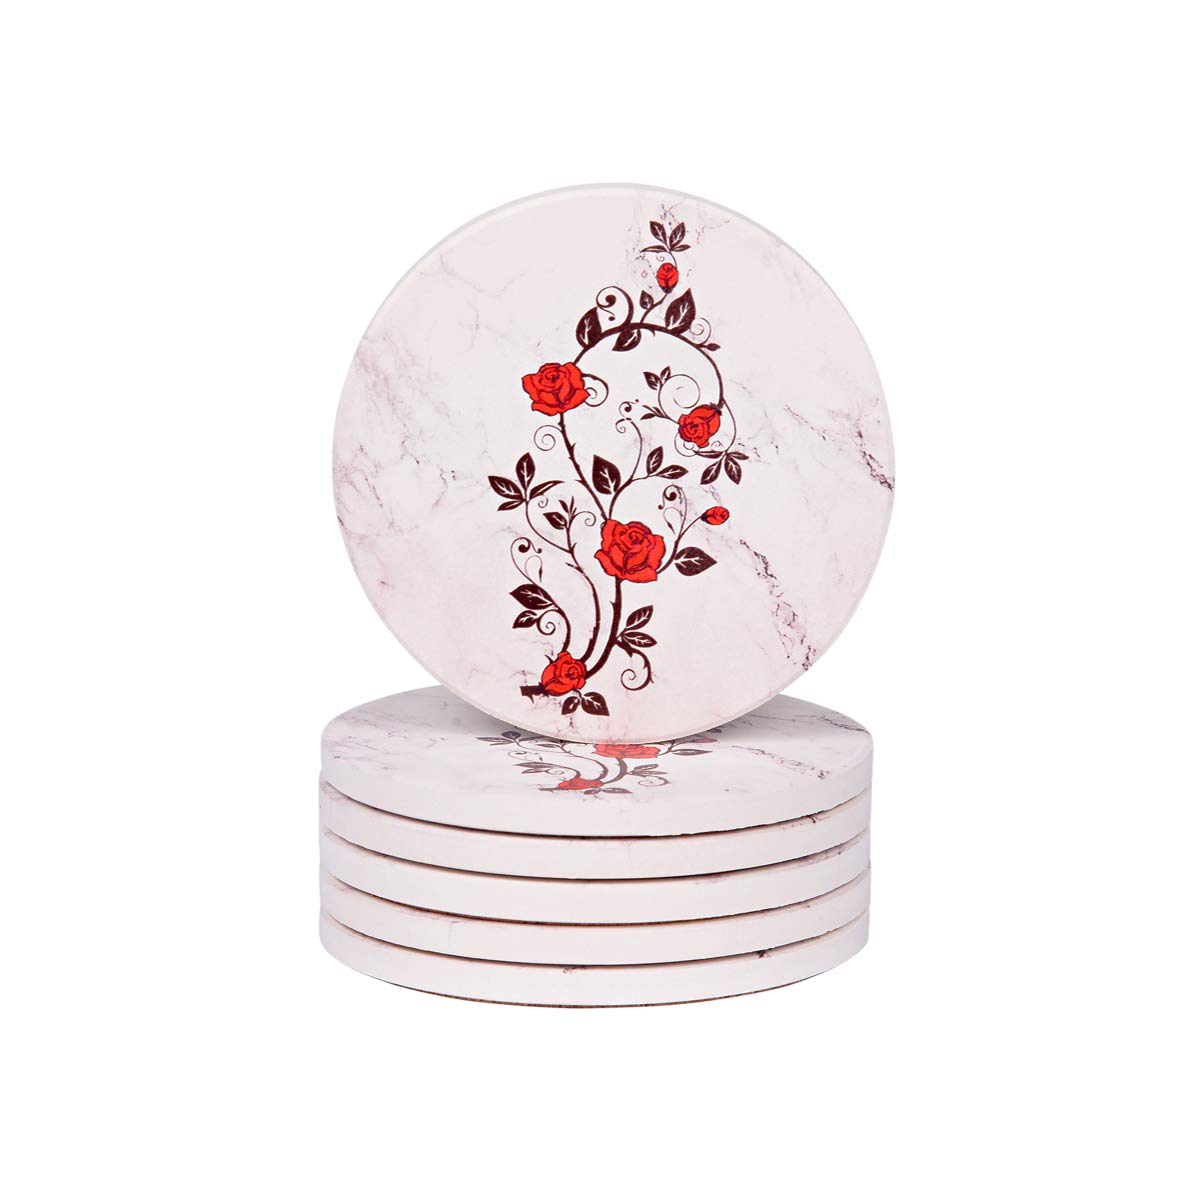 Drinks Coasters - Funny Absorbent Ceramic Rose Set of 6 White Marble Style with Cork Backing, Protects Furniture From Damage (Ceramic Rose)